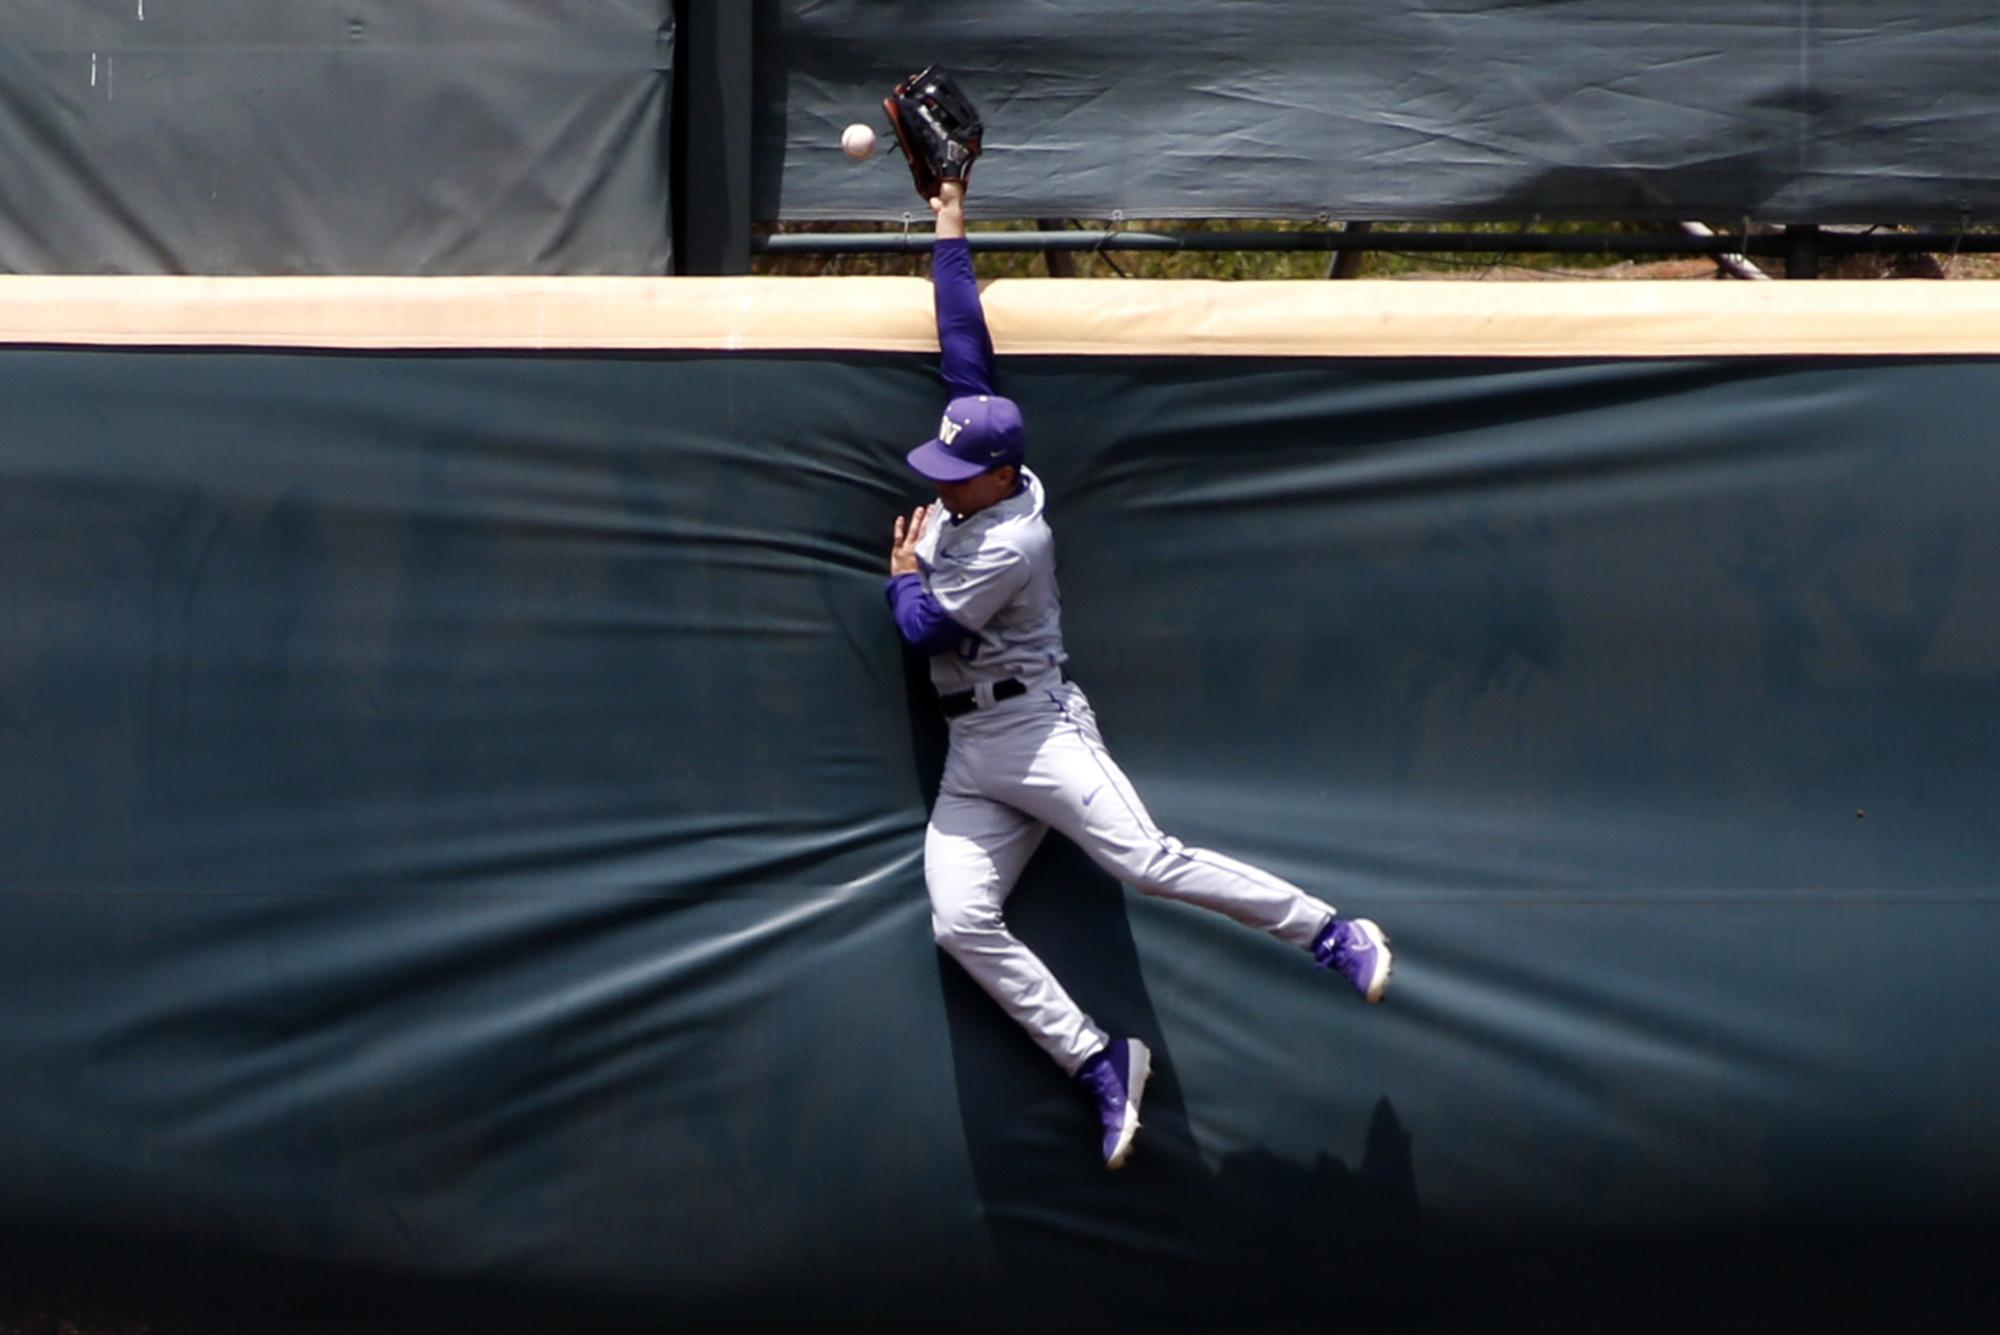 LOS ANGELES, CALIFORNIA - MAY 19:  Mason Cerrillo #6 of University of Washington jumps to try to catch the ball during a baseball game UCLA at Jackie Robinson Stadium on May 19, 2019 in Los Angeles, California. (Photo by Katharine Lotze/Getty Images)